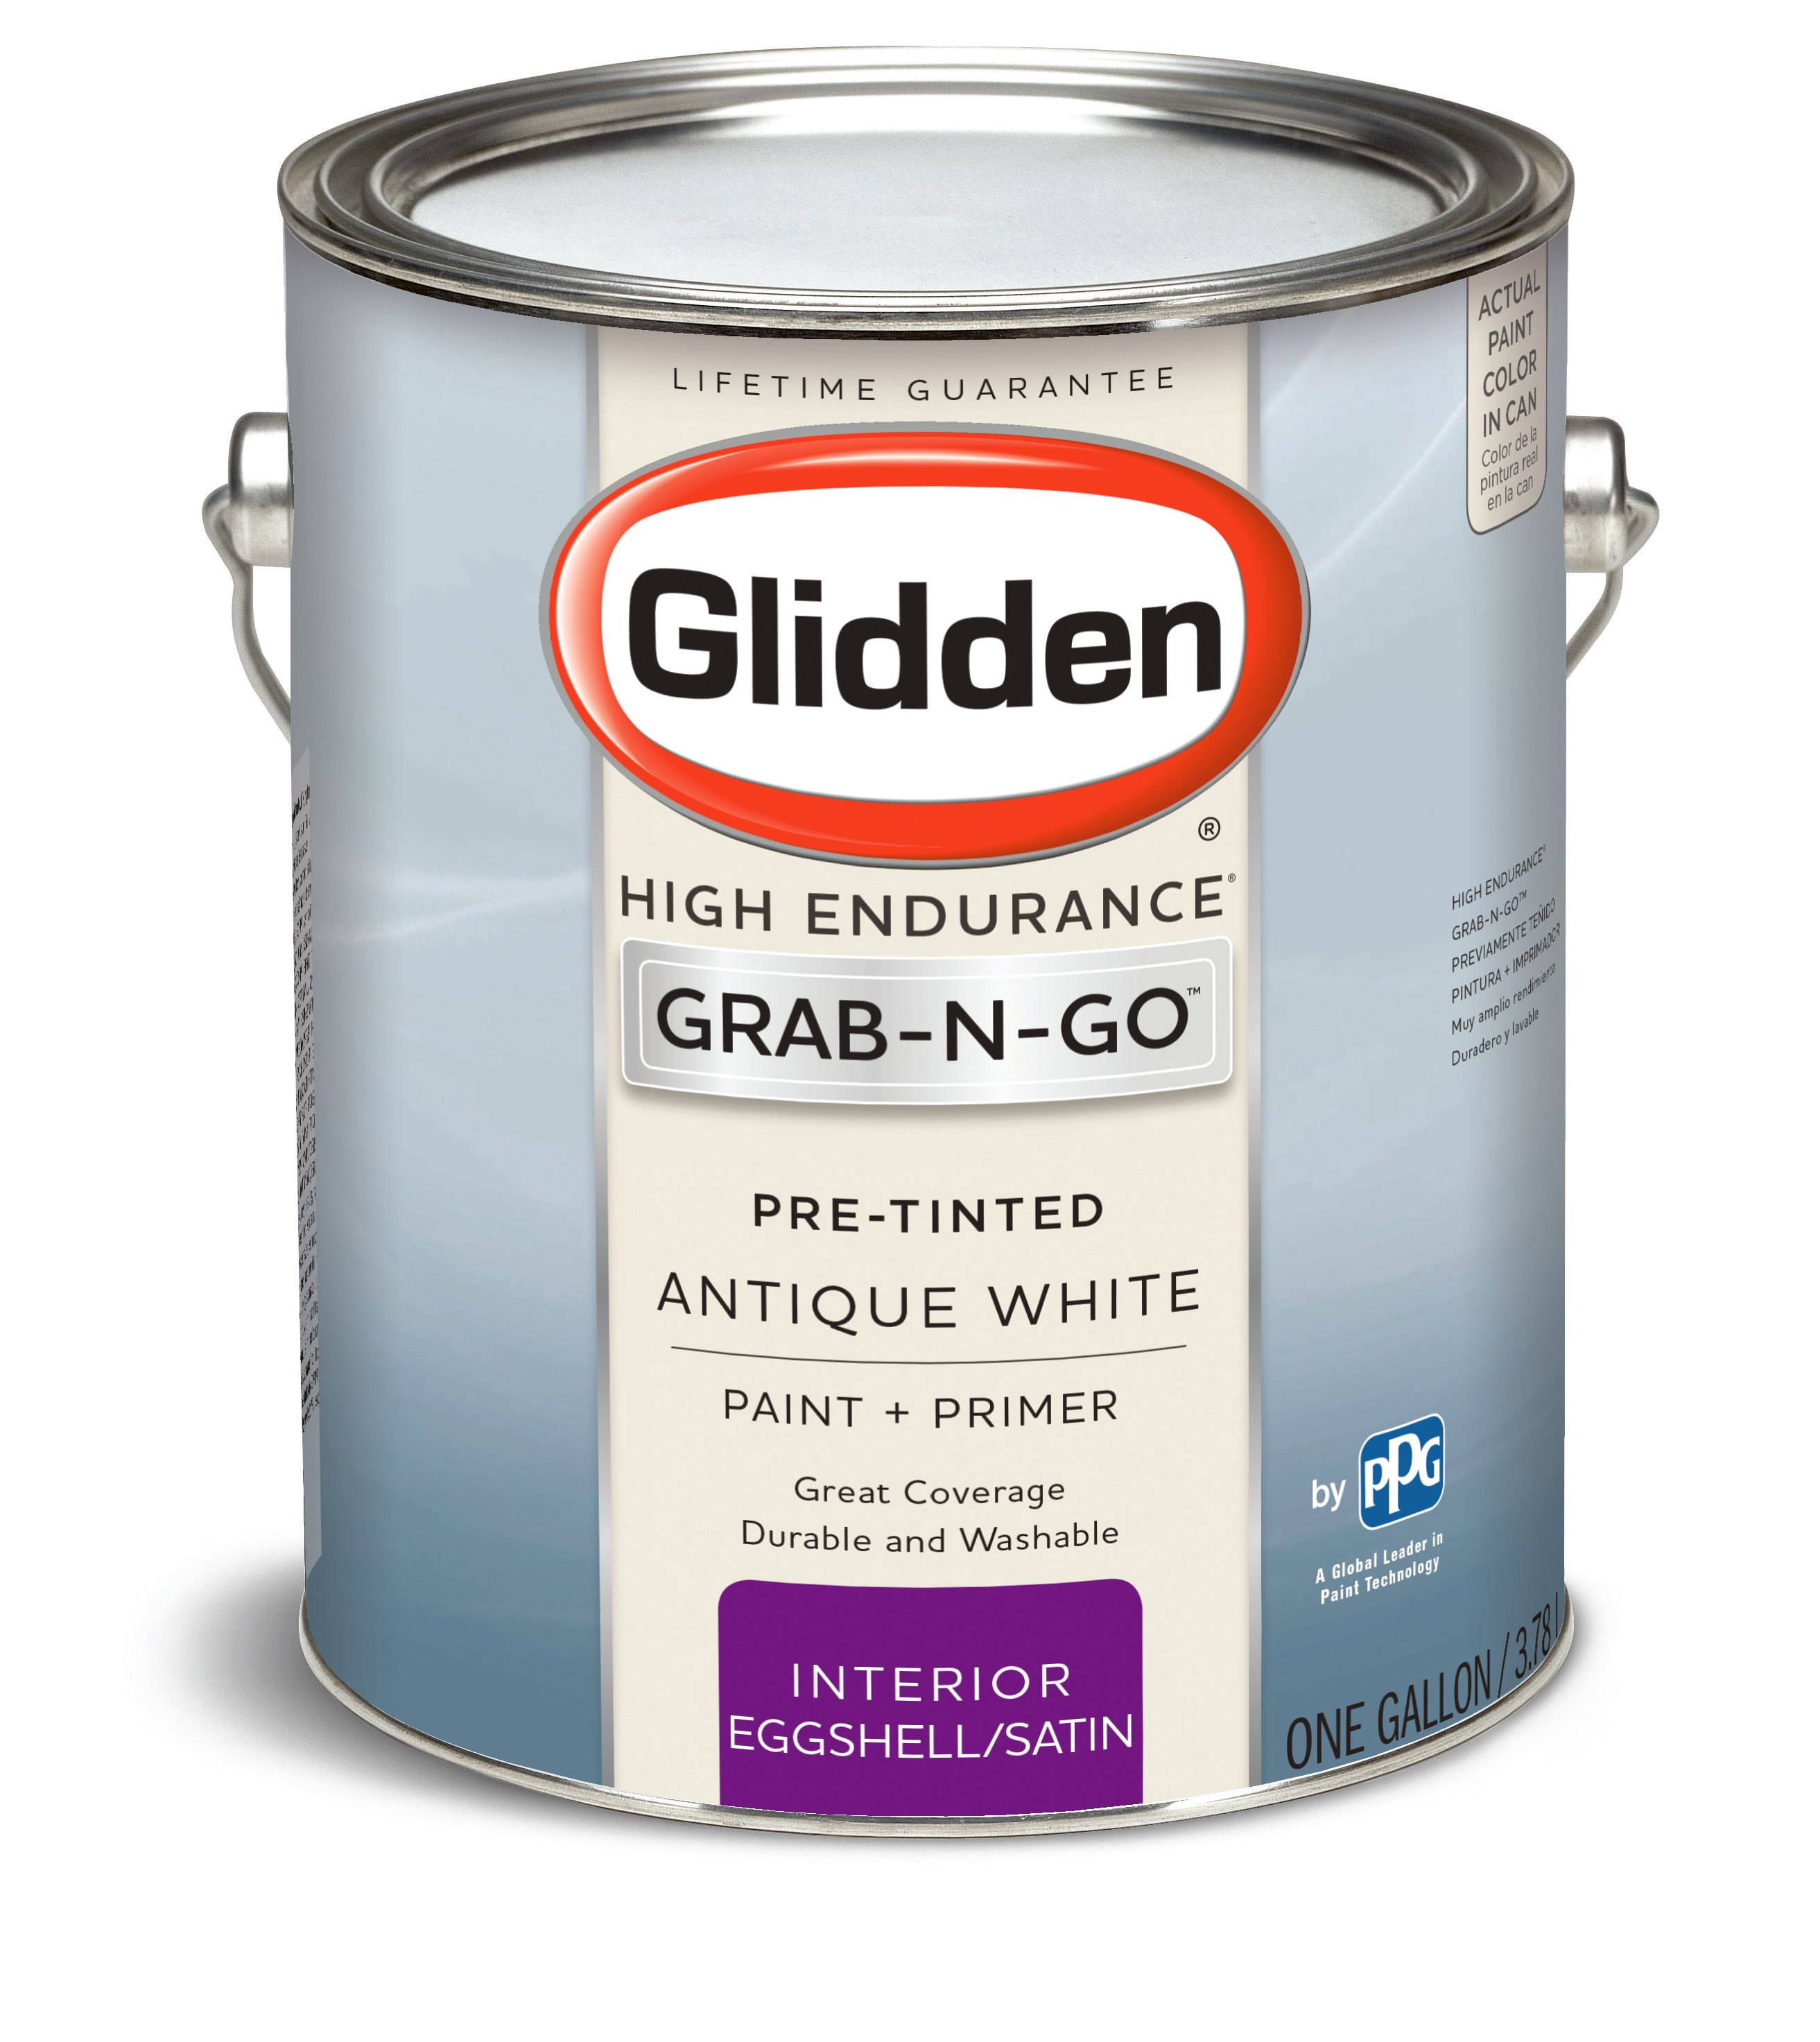 Glidden Pre Mixed Ready To Use, Interior Paint and Primer, Antique White, Eggshell Finish